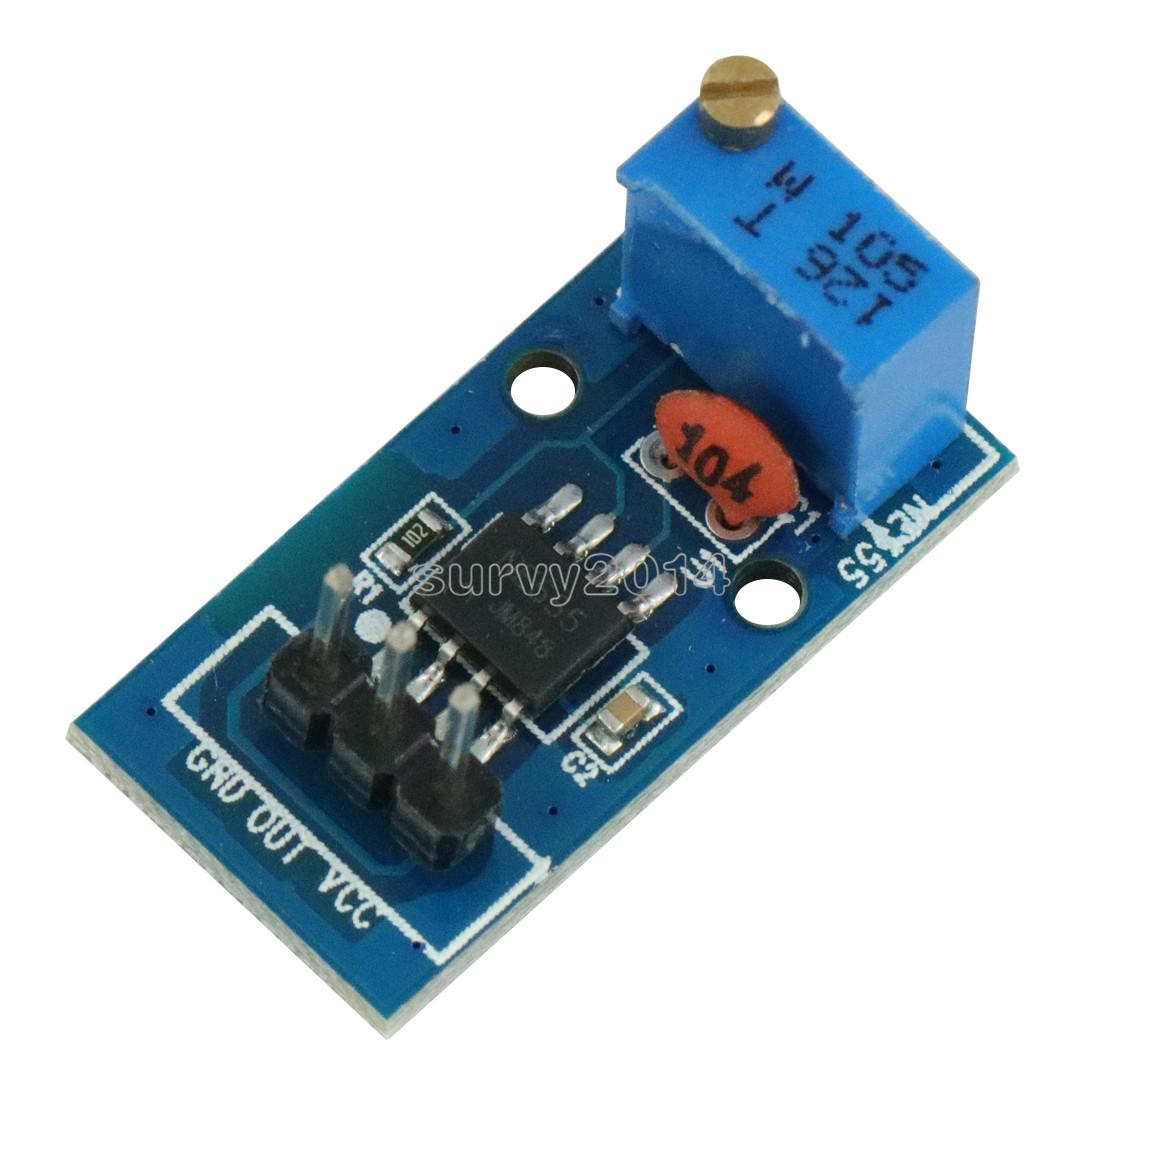 NE555 Adjustable Resistnce Frequency Pulse Generator Module For Arduino Smart Car 5V-12V Single Channel Output Module 29*12mm